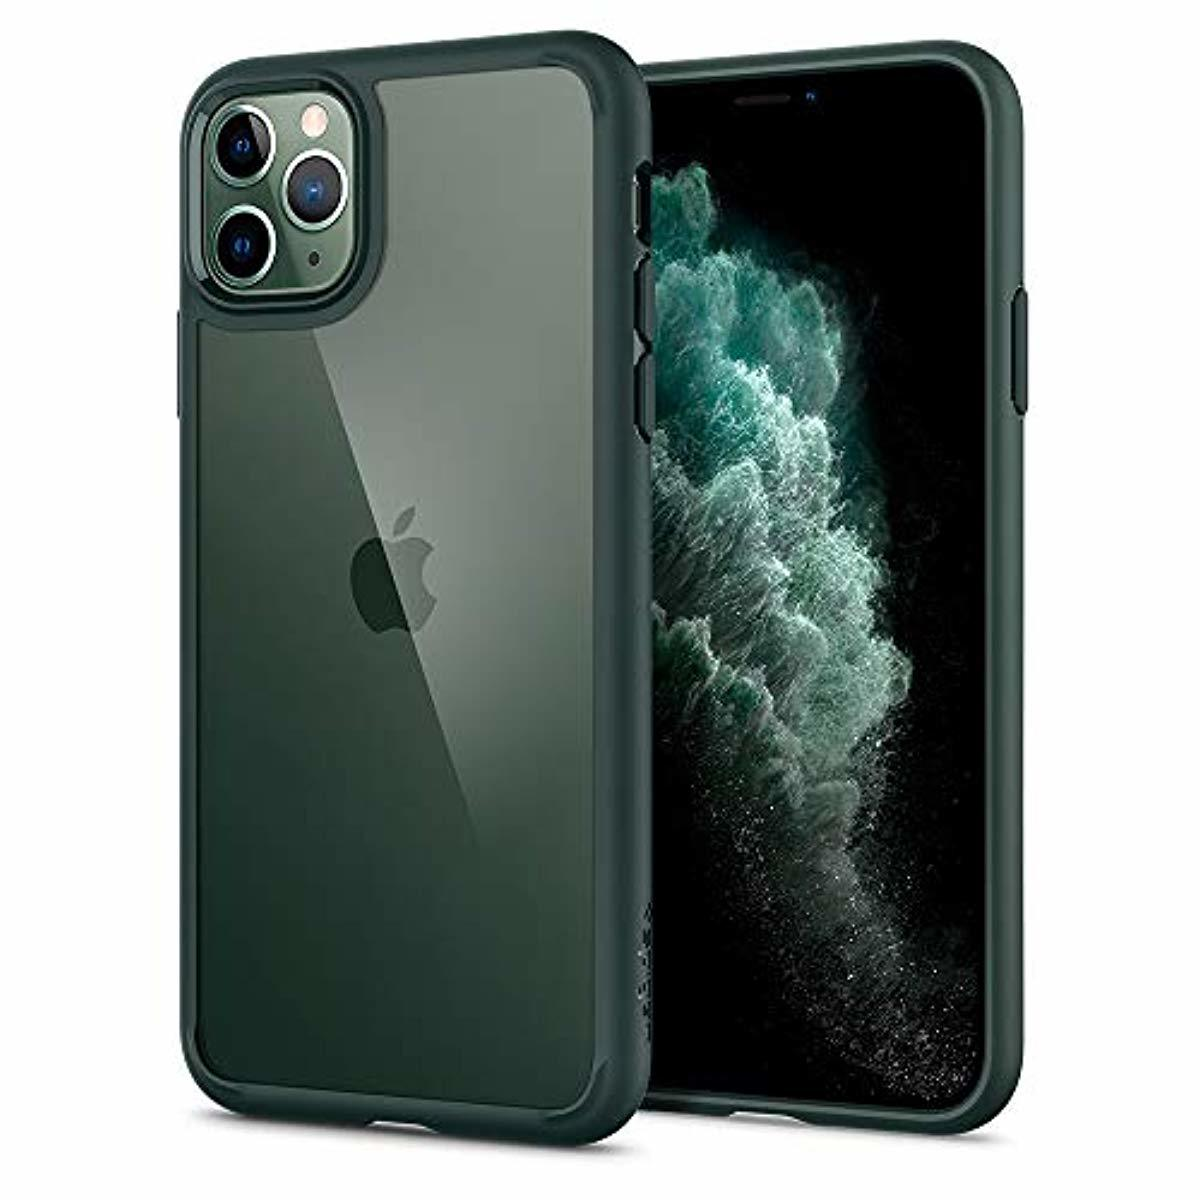 Spigen Ultra Hybrid Designed for Apple iPhone 11 Pro Max Case (2019) - Midnight Green